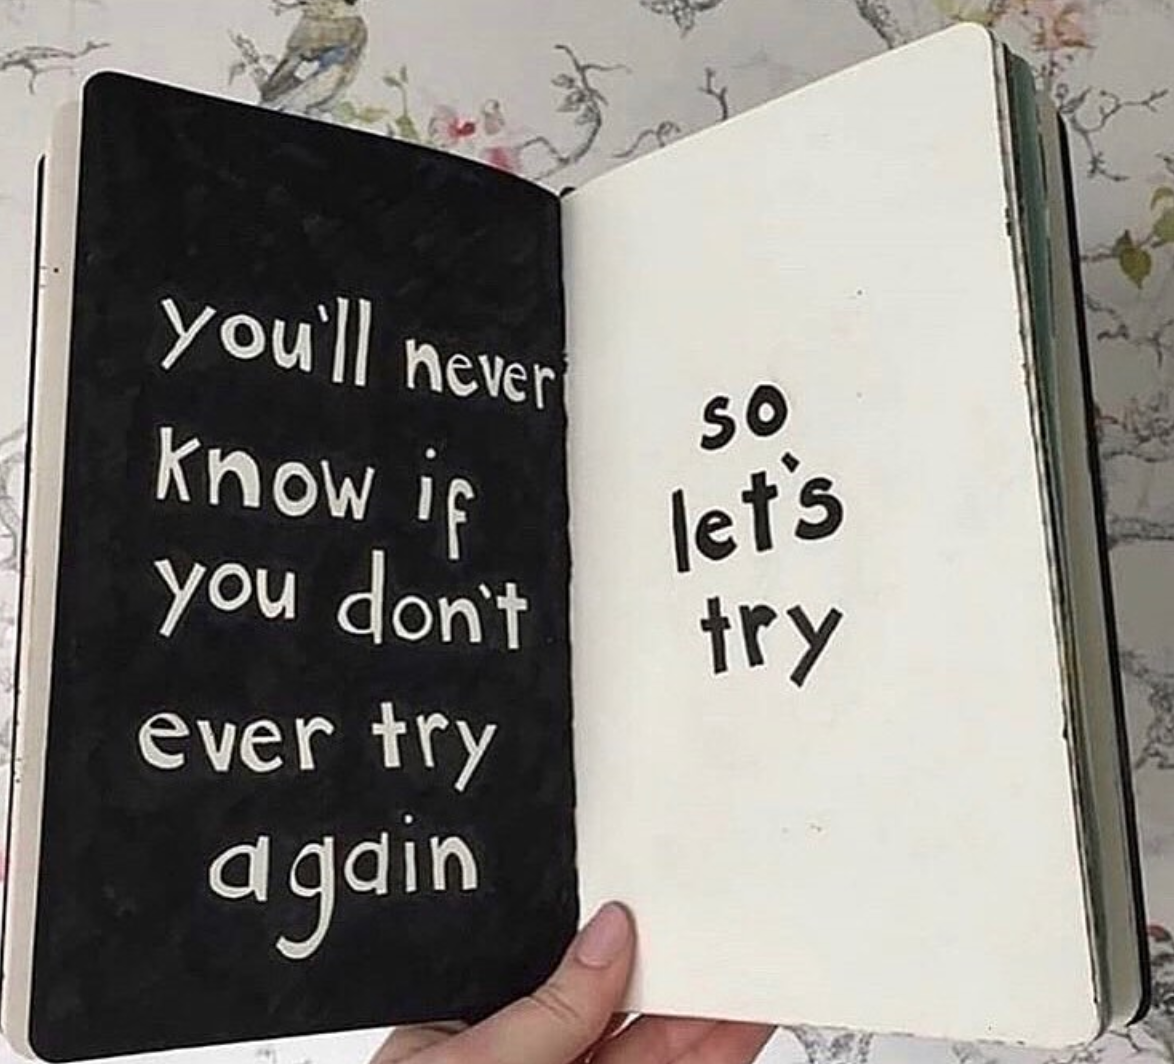 [Image] You'll never know if you don't ever try again. So, let's try.